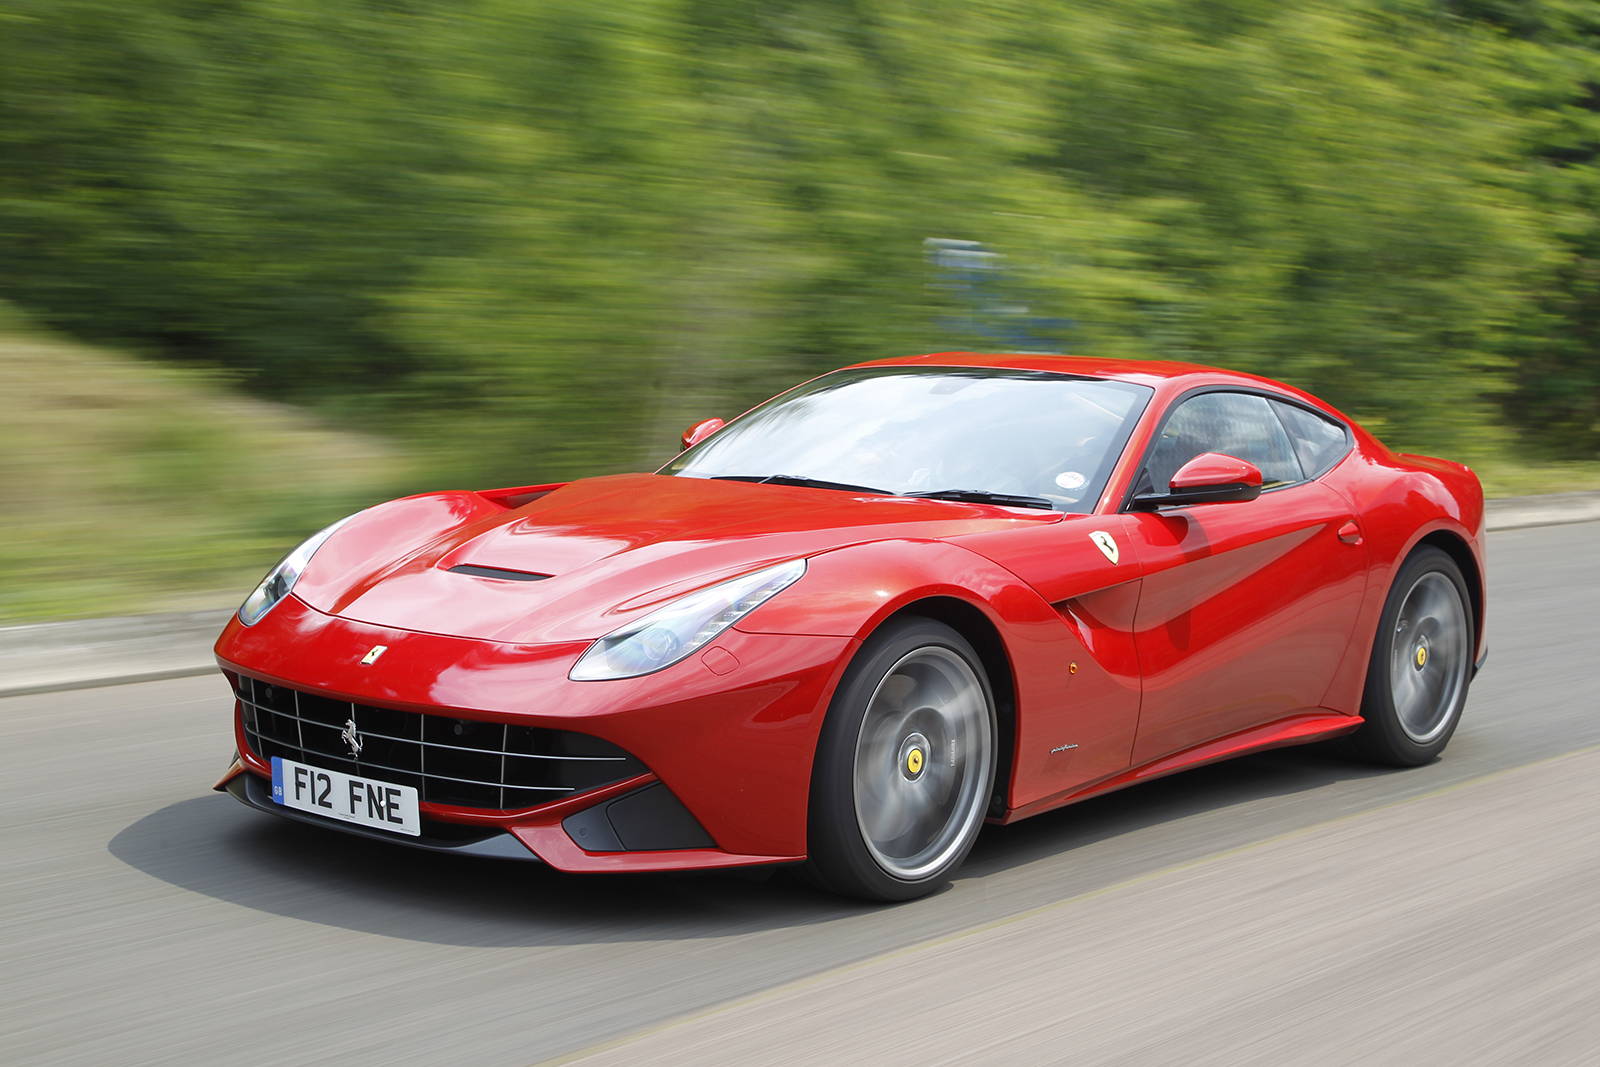 Ferrari Profits Rise Despite Fewer Sales In 2013 | Autocar